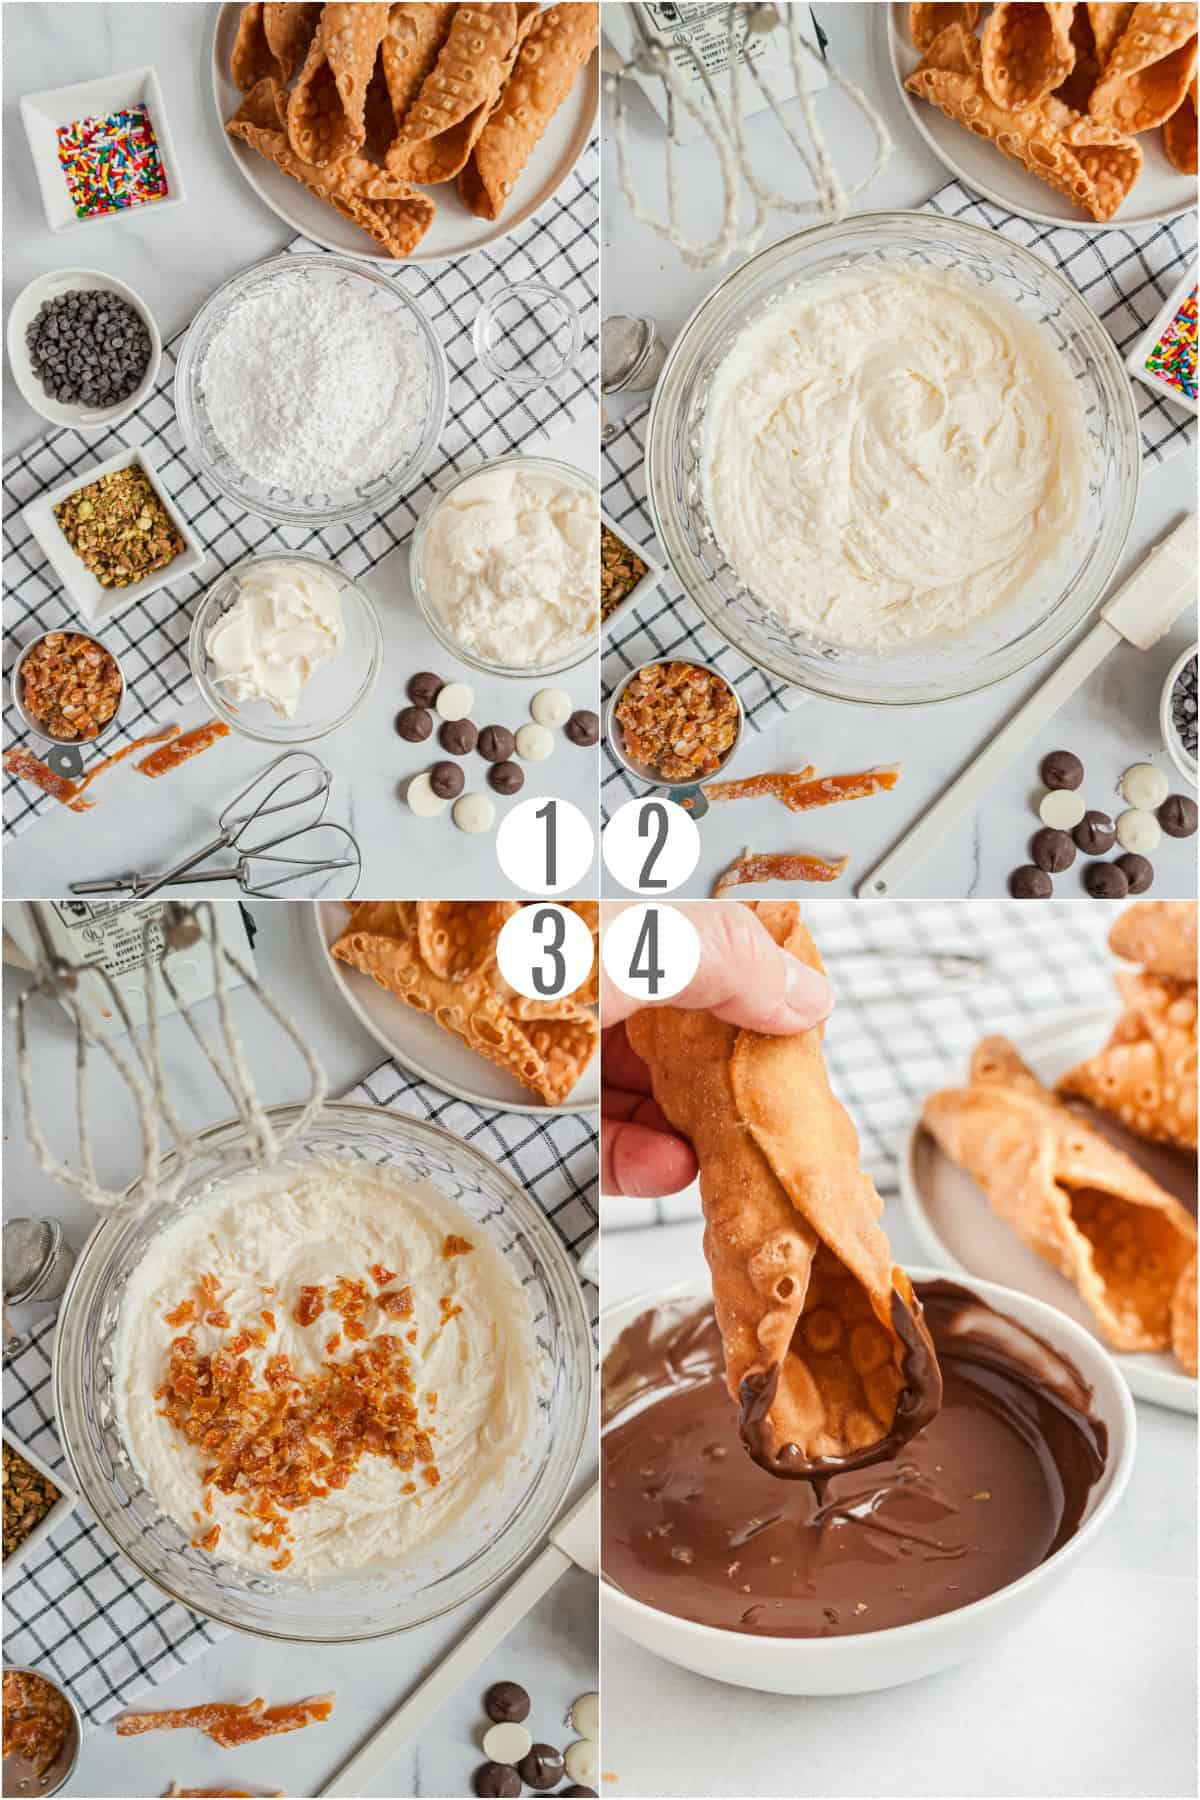 Step by step photos showing how to make homemade cannolis.